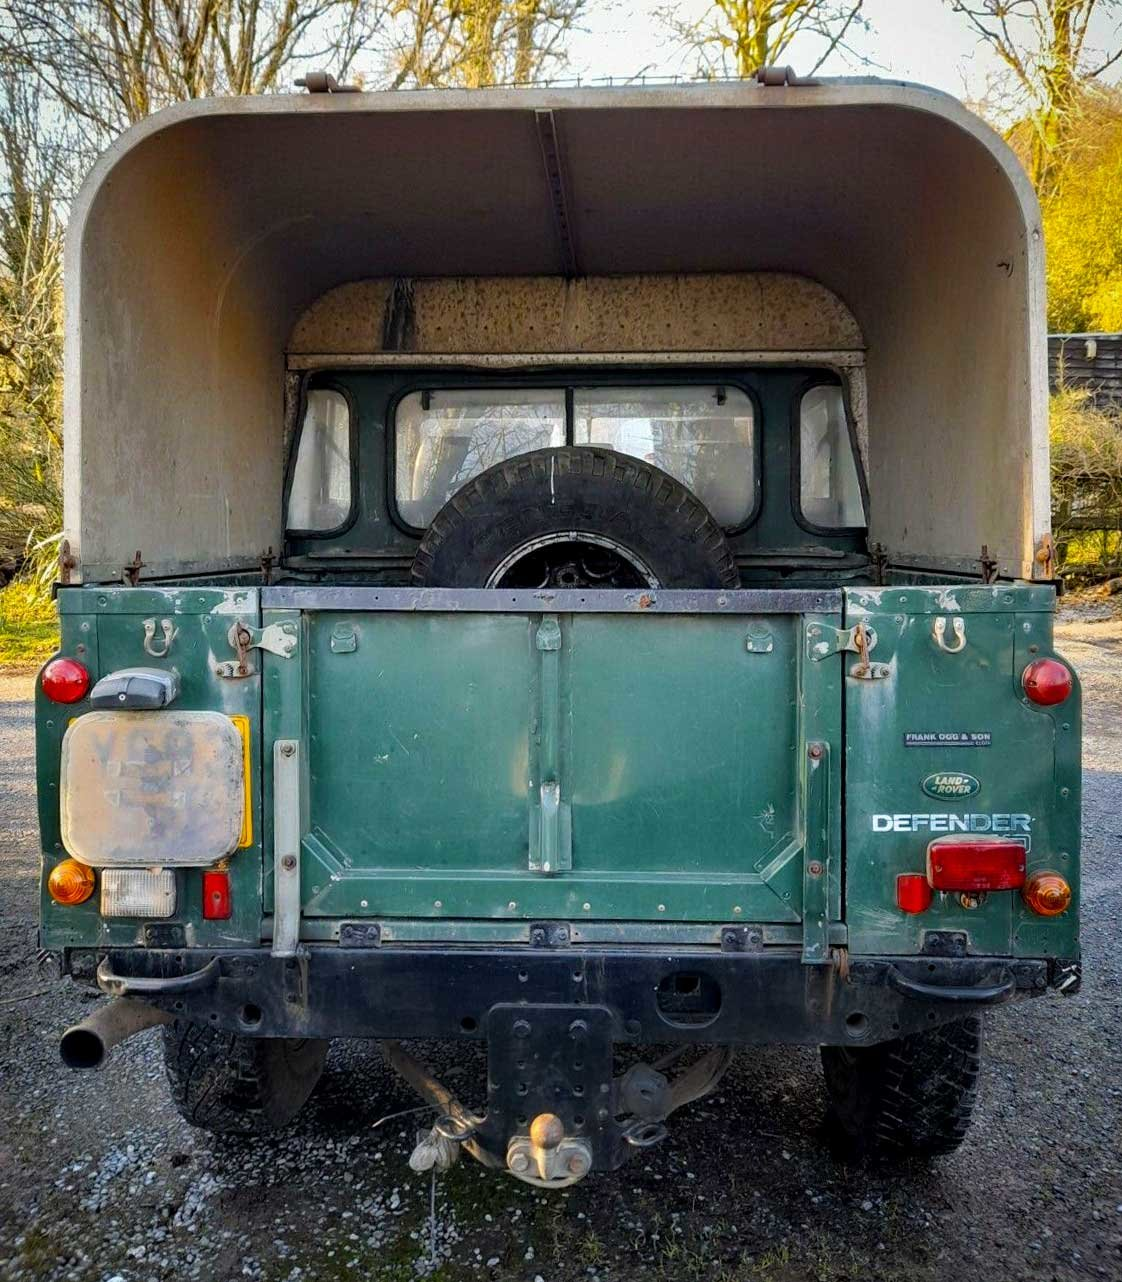 2001 DEFENDER 110 TD5 Twin Cab on GALVANISED CHASSIS For Sale (picture 3 of 5)